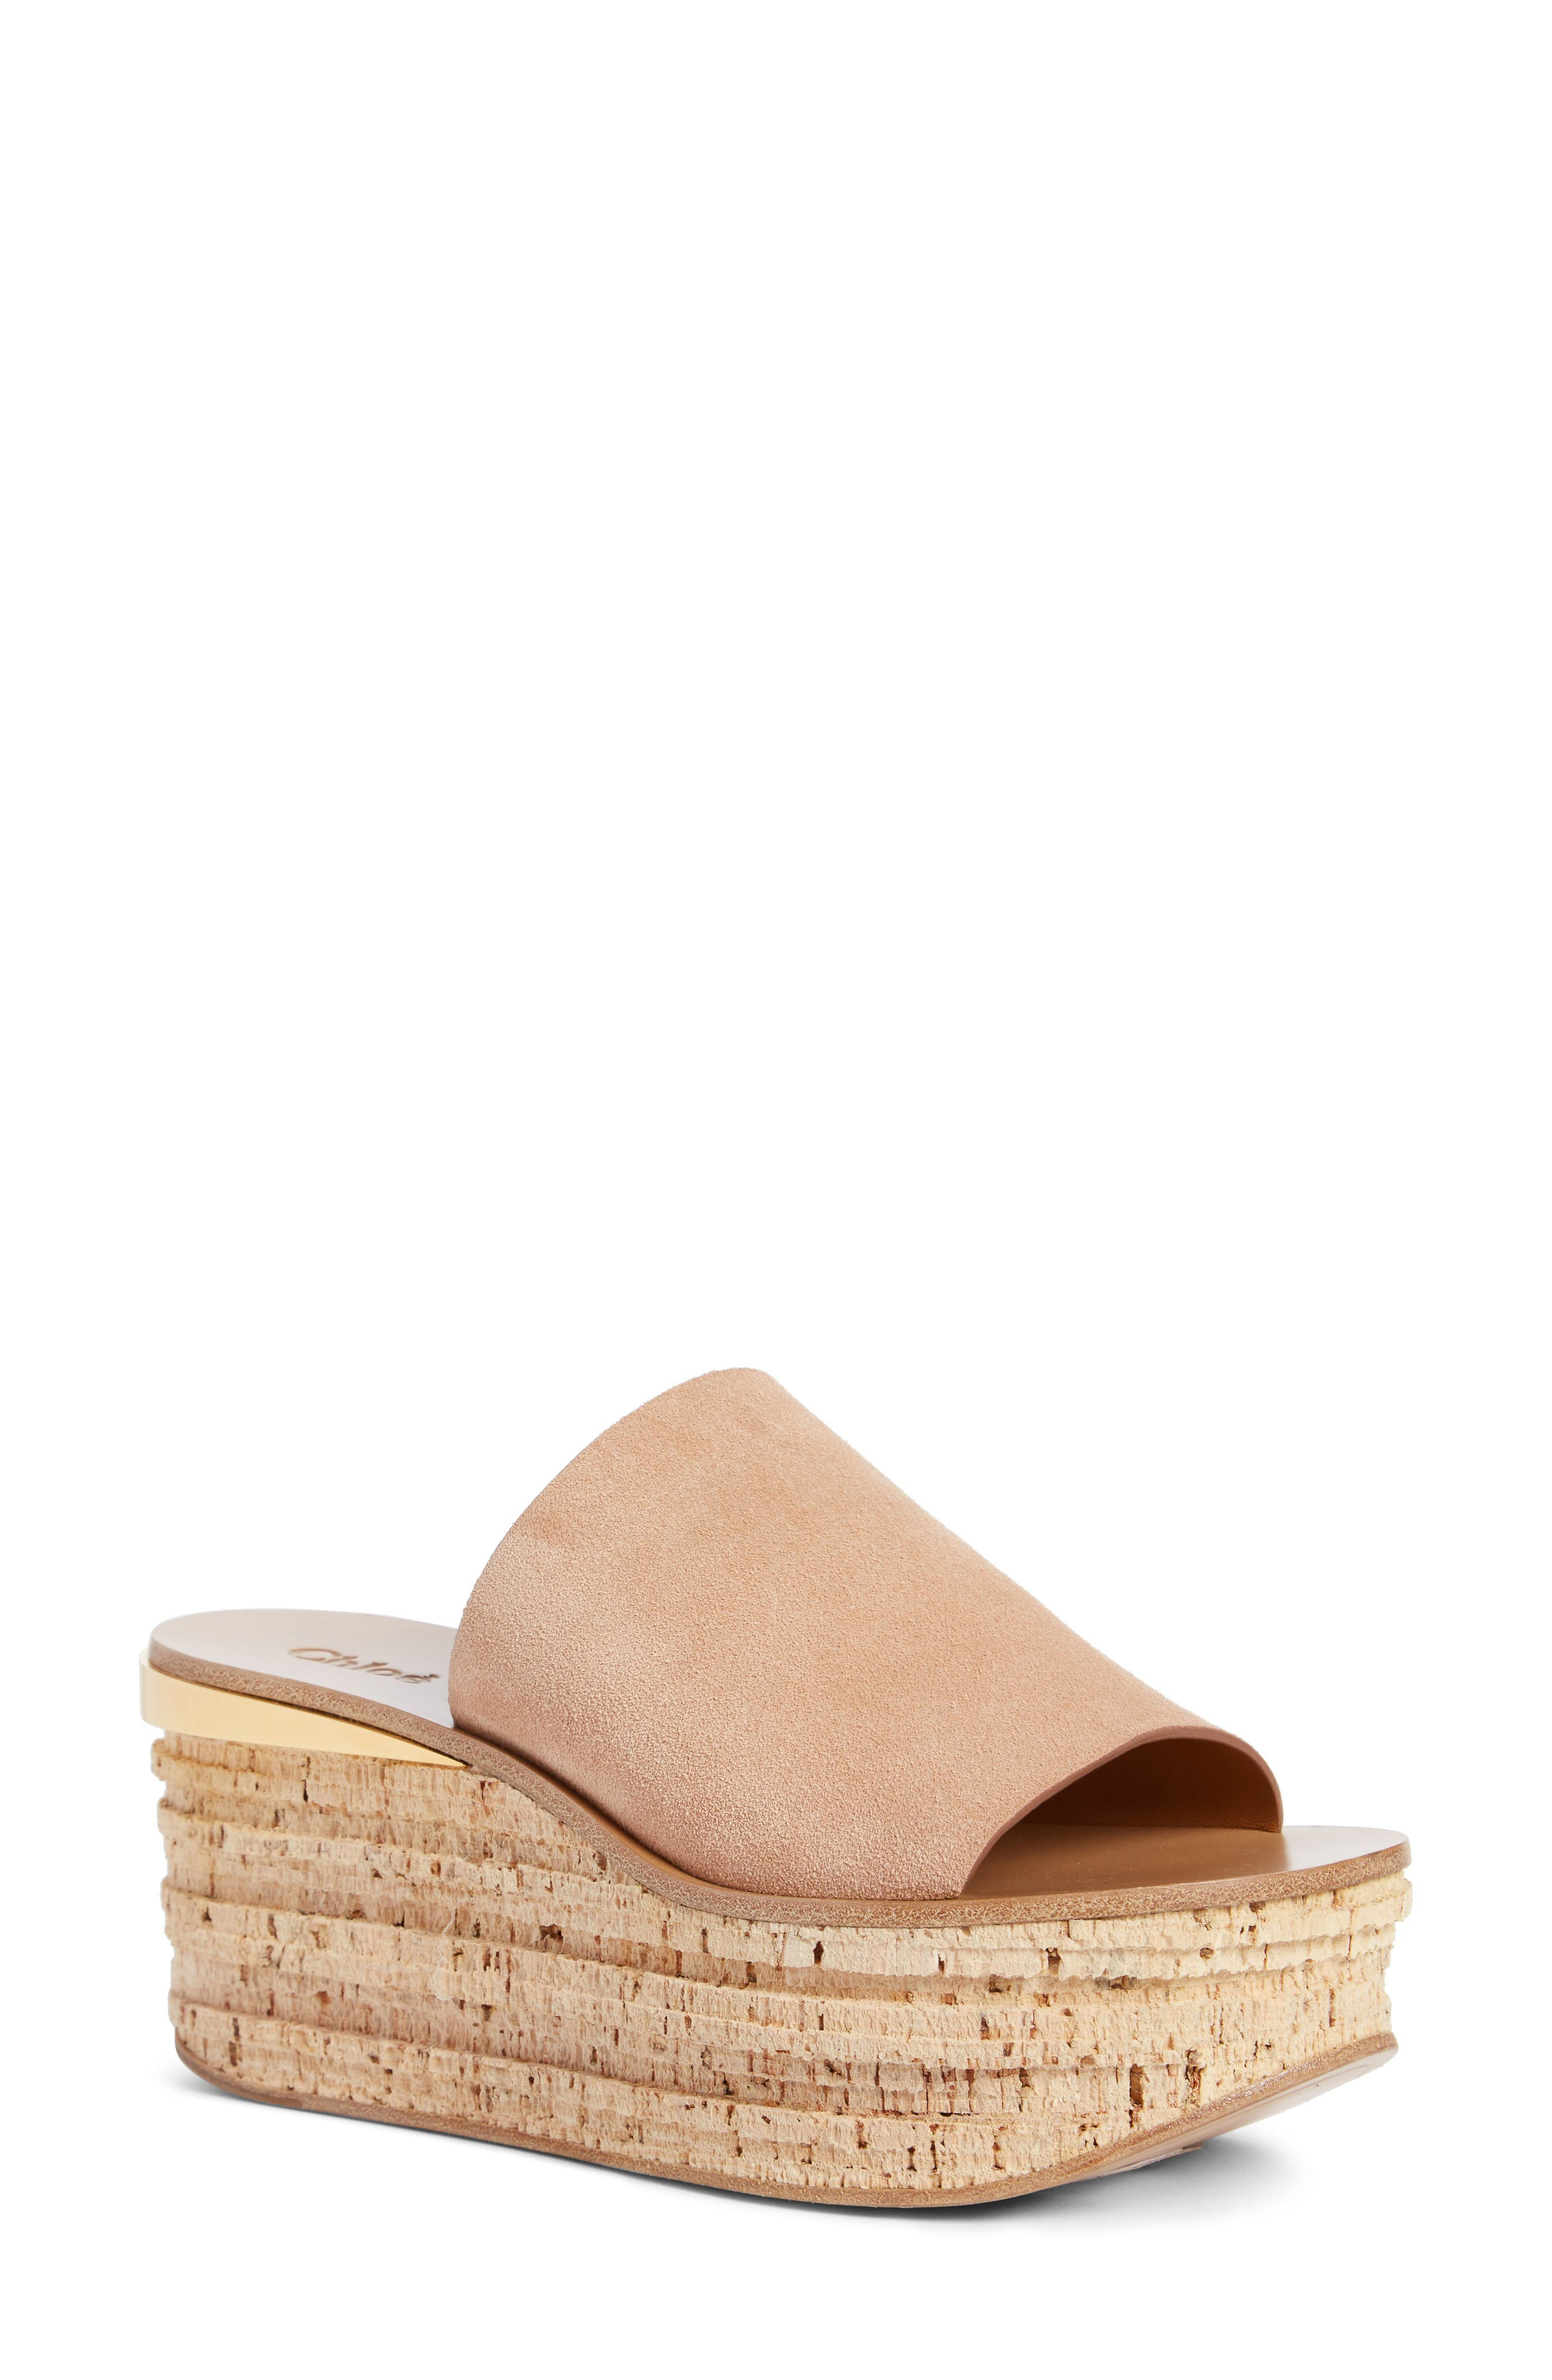 Alternate Image 1 Selected - Chloé Camille Cork Platform Sandal (Women)